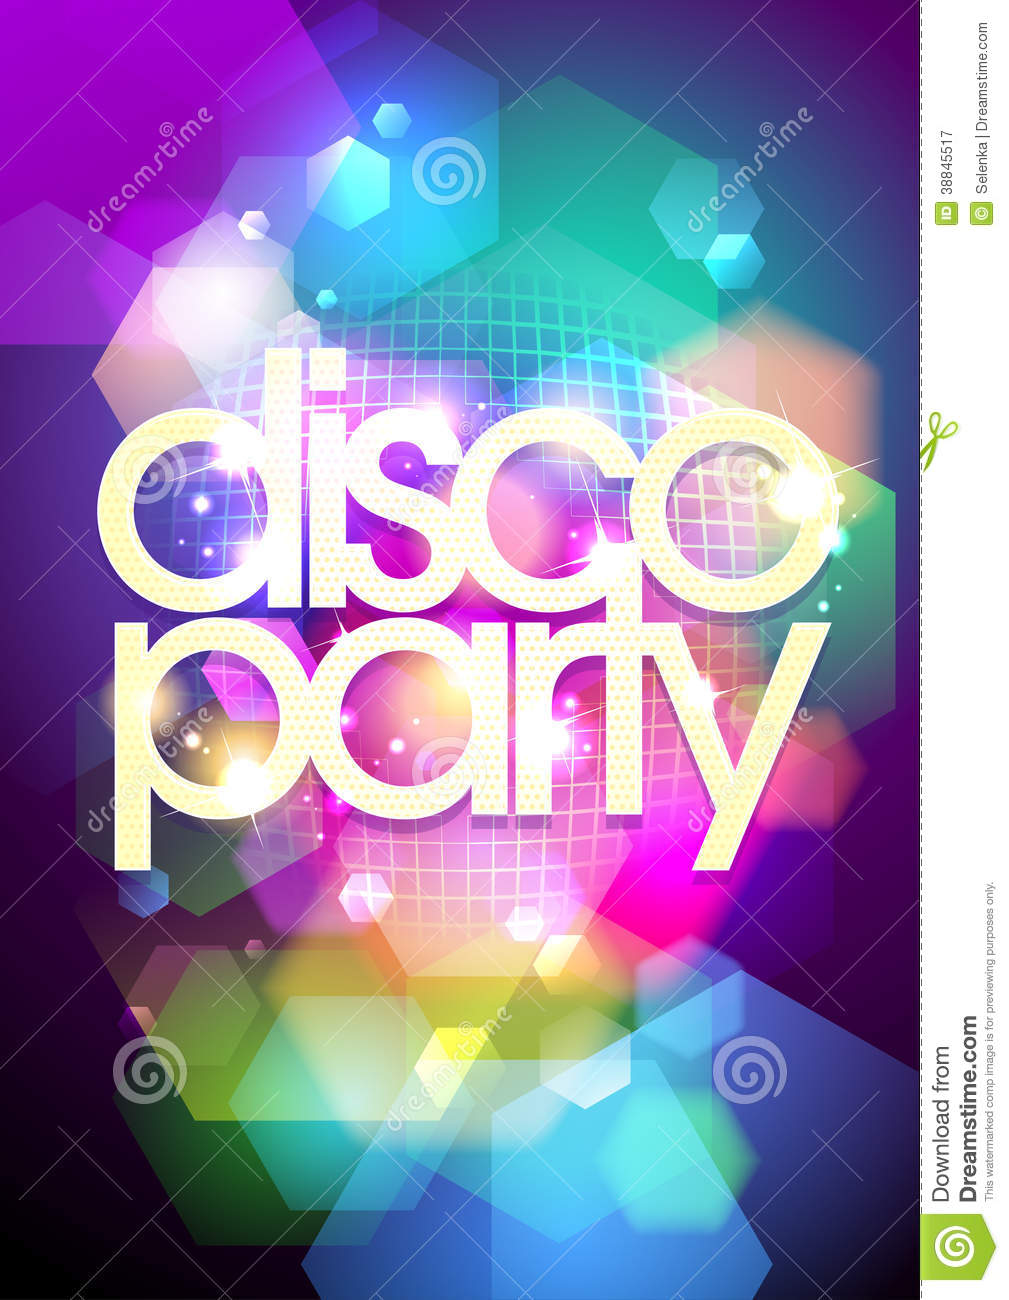 Disco Party Design On A Bokeh Background. Stock Vector - Image: 38845517